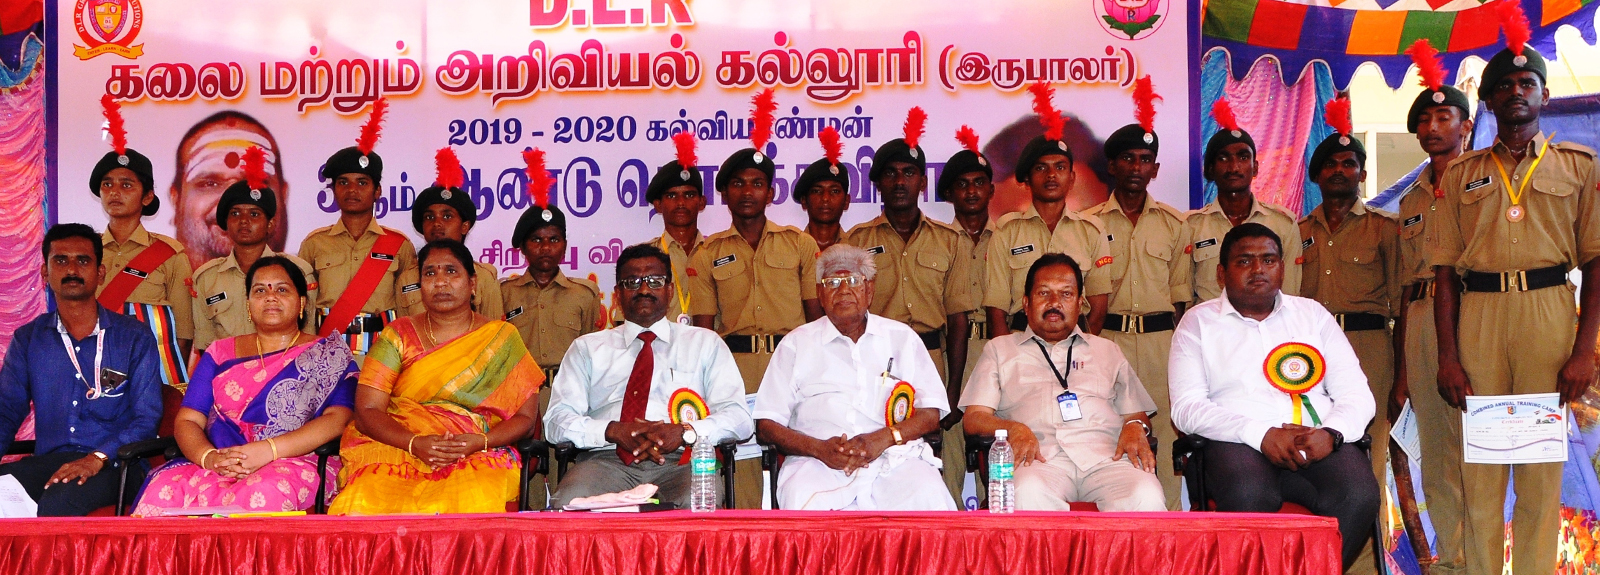 DLR Arts and Science College, Arcot Image